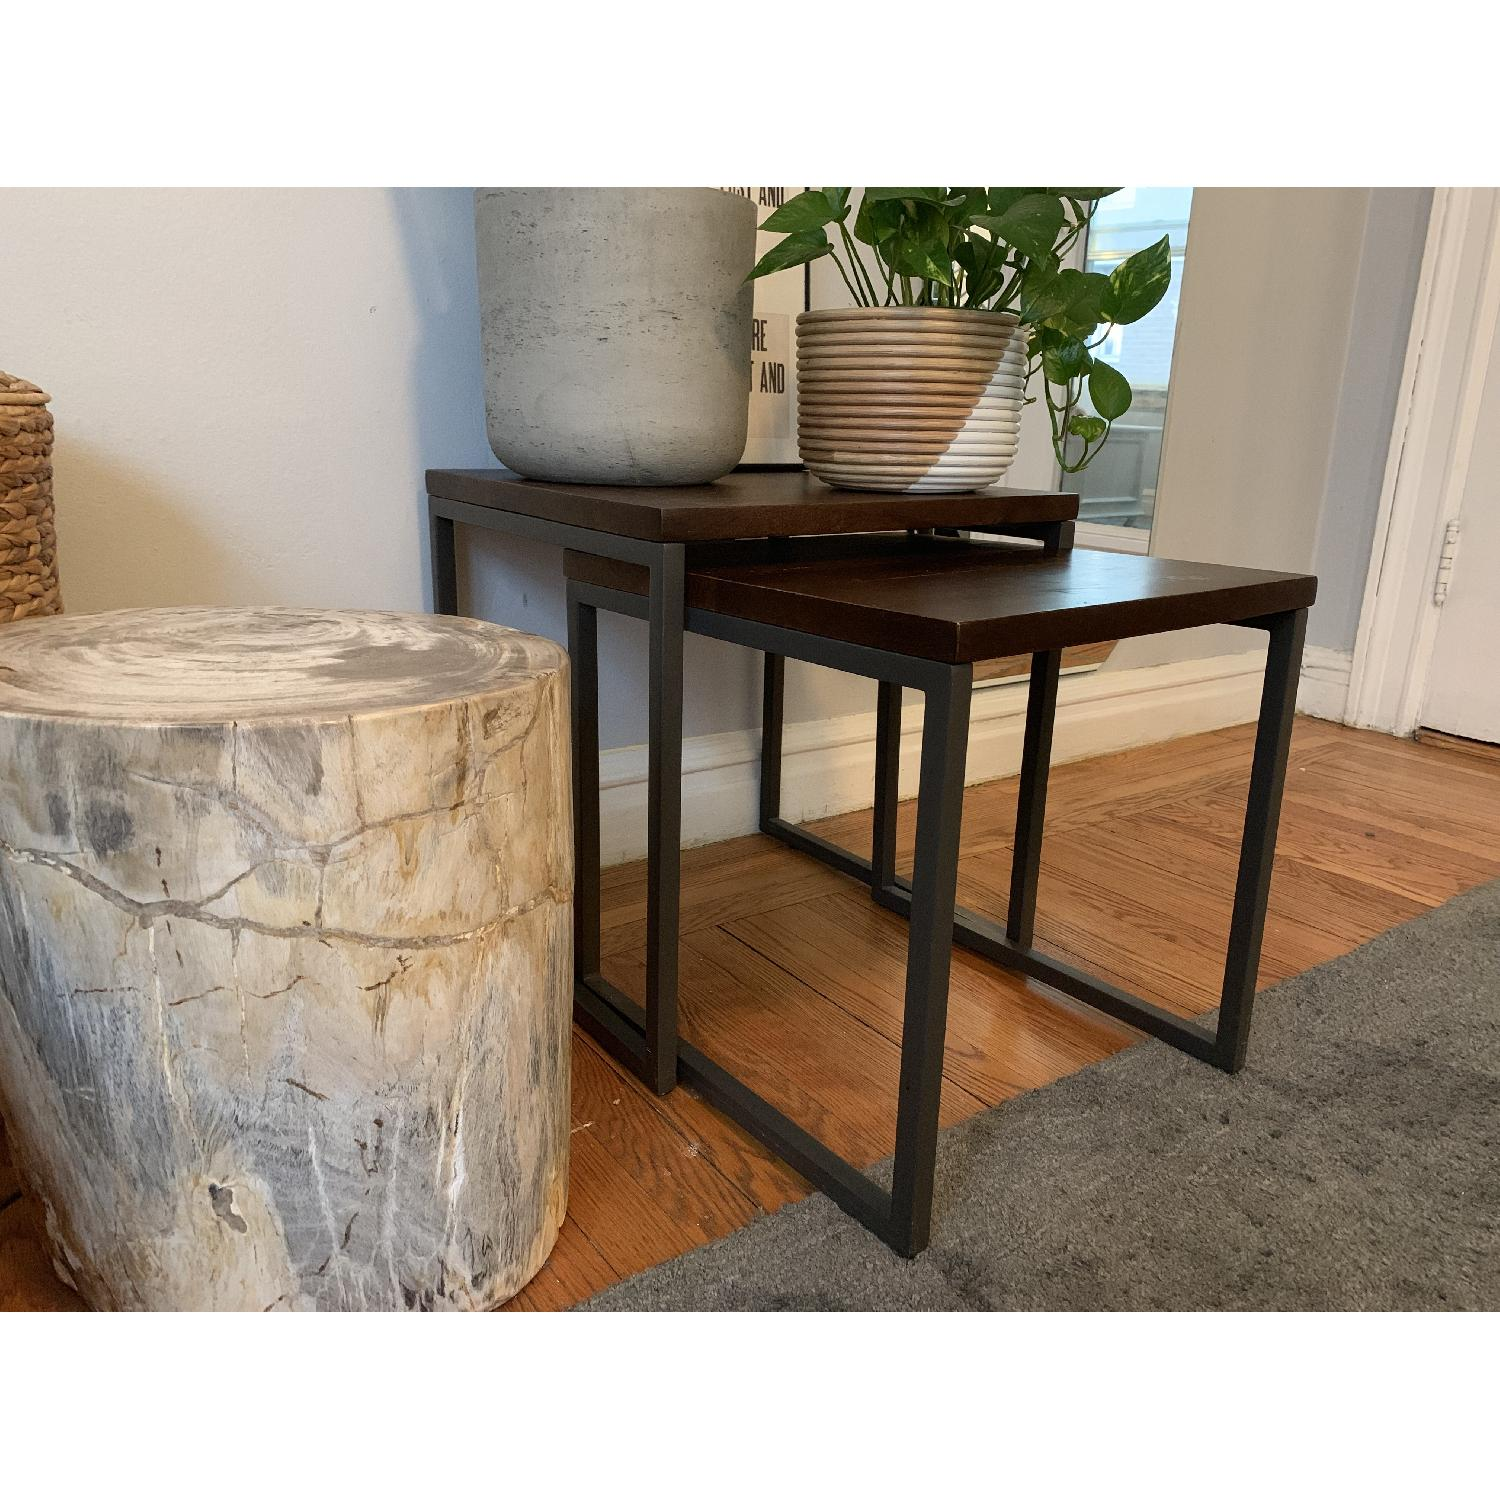 West Elm Box Frame Nesting Tables w/ Wood Top - image-2